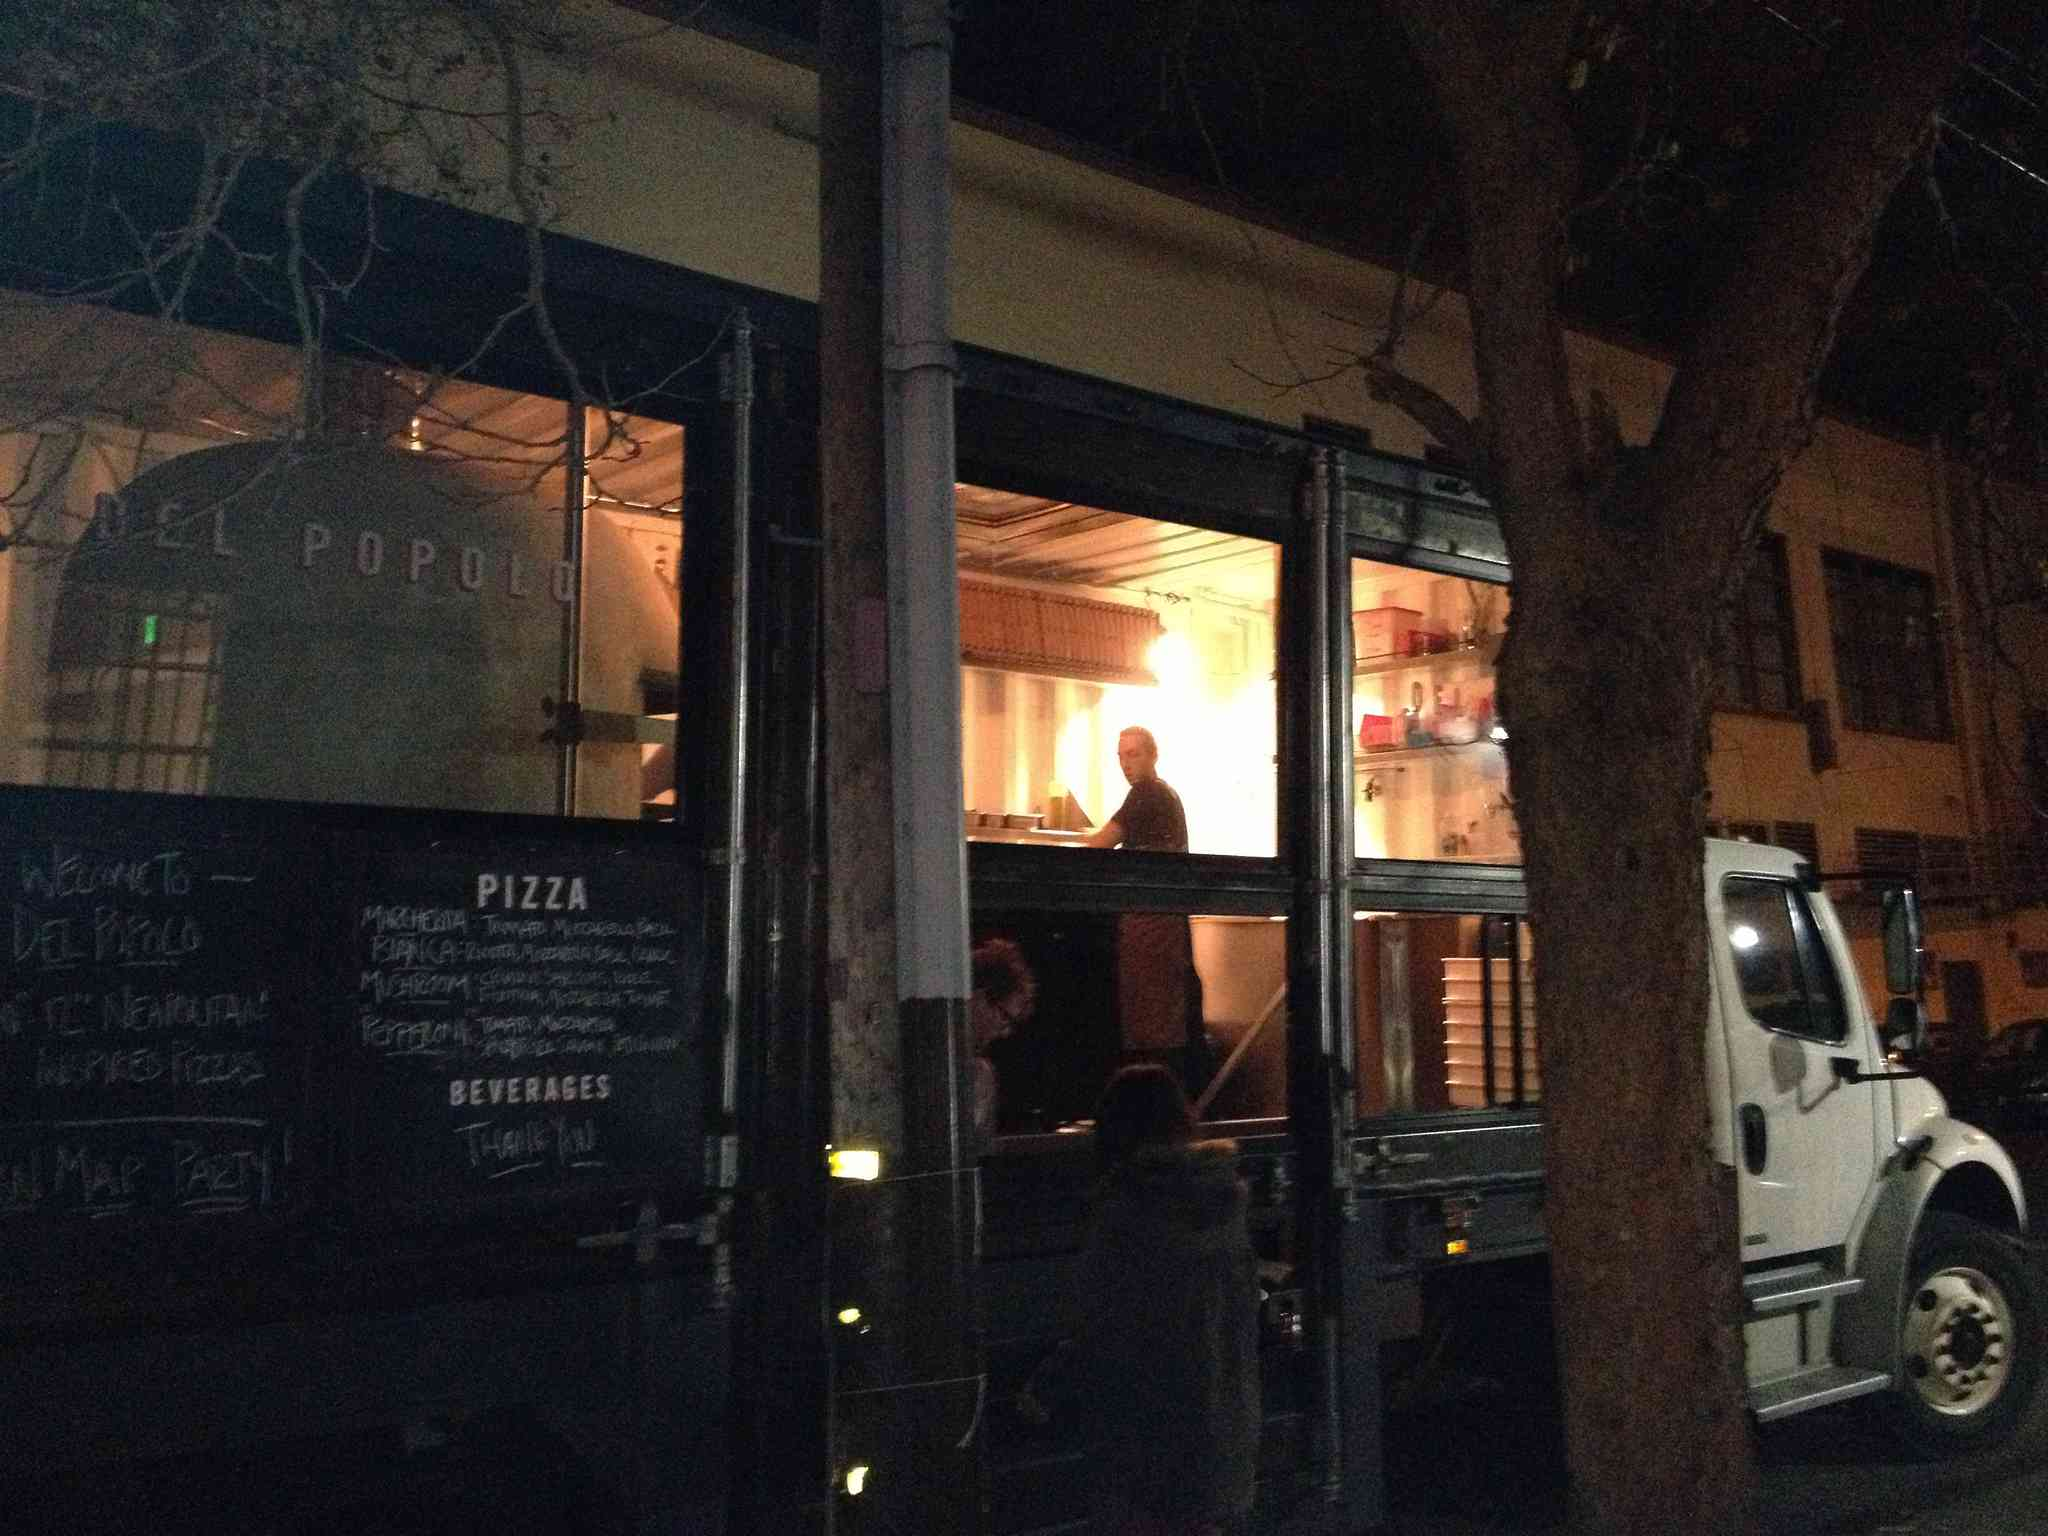 Del Popolo's wood-fired pizza truck catering a party